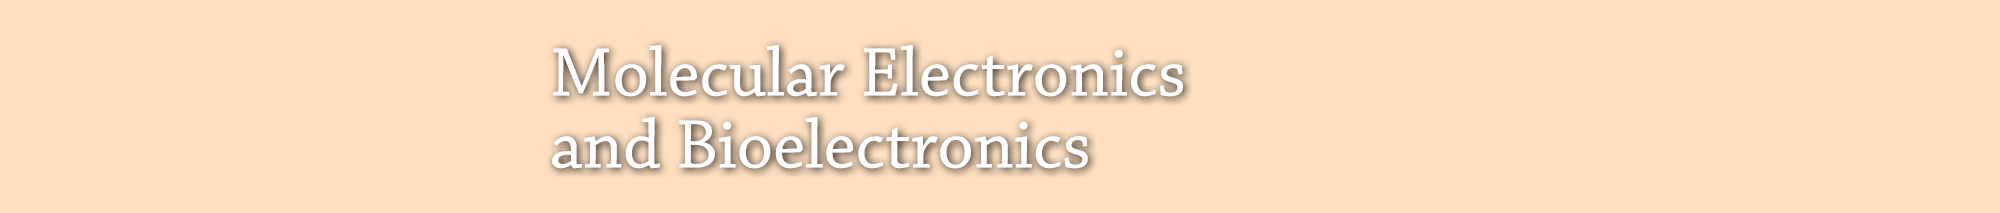 Molecular Electronics and Bioelectronics